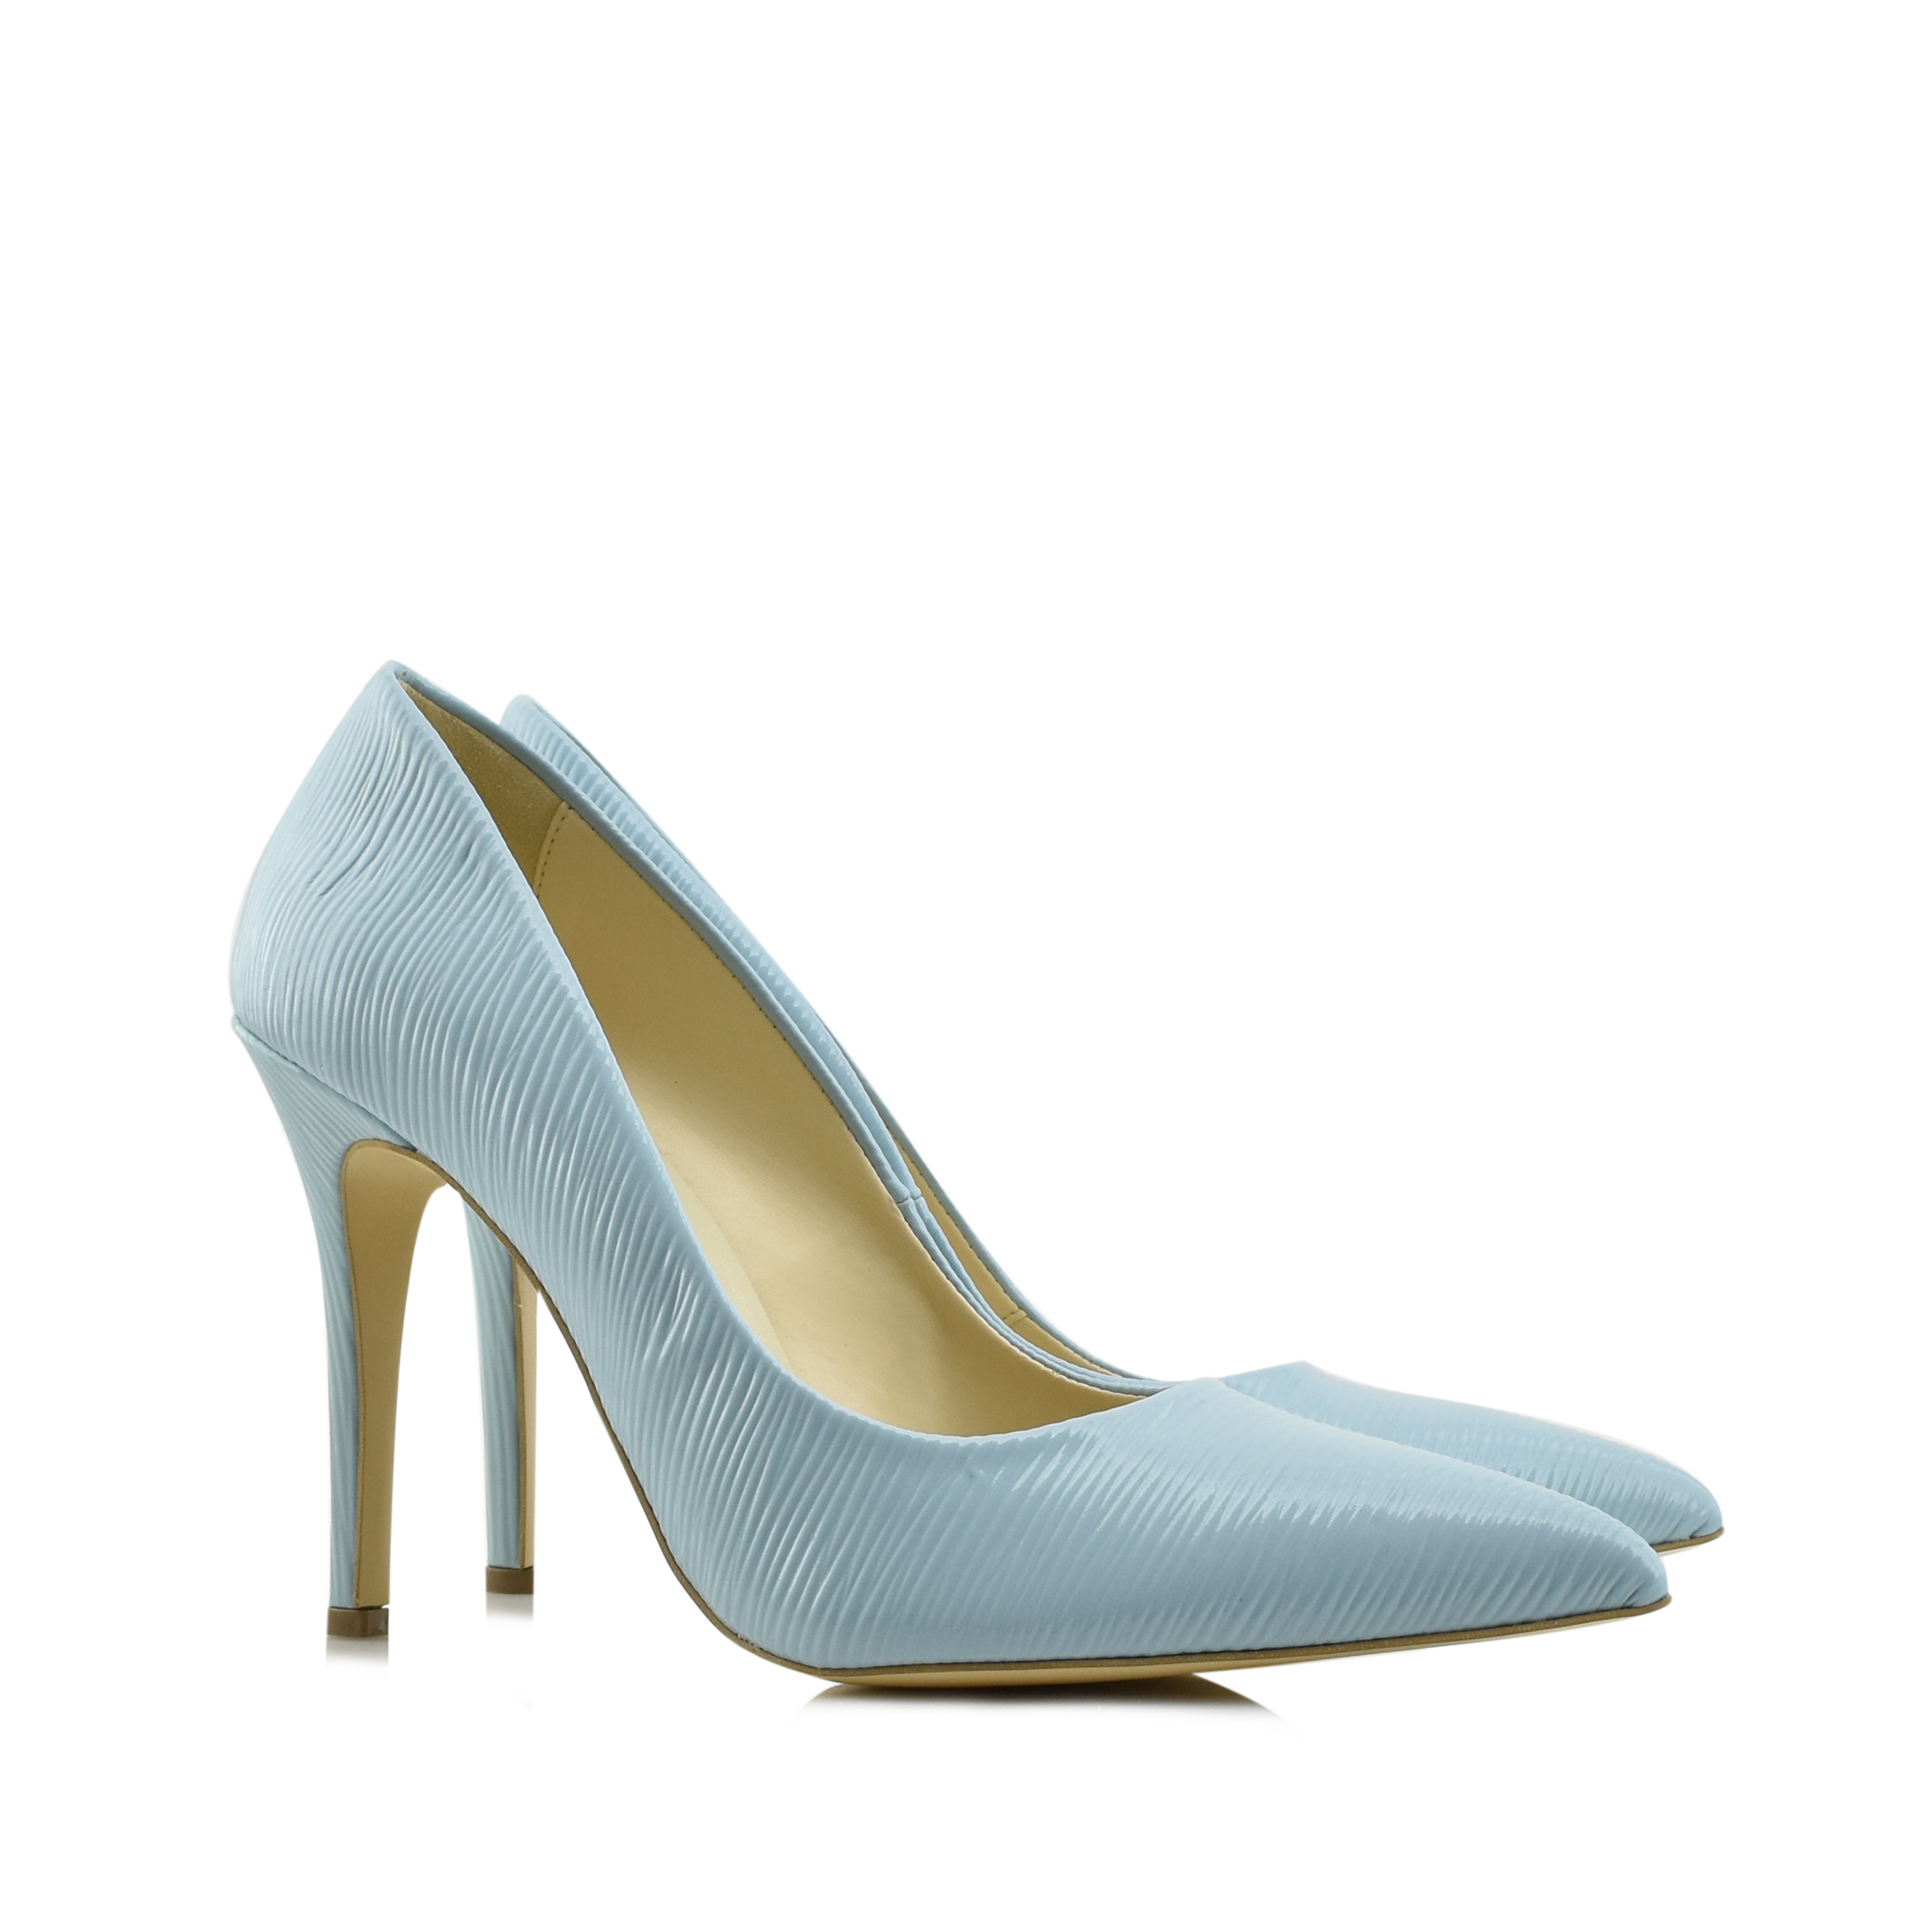 """ARIS TSOUBOS"" DESIGNER LIGHT BLUE - 197-365 BLUE"